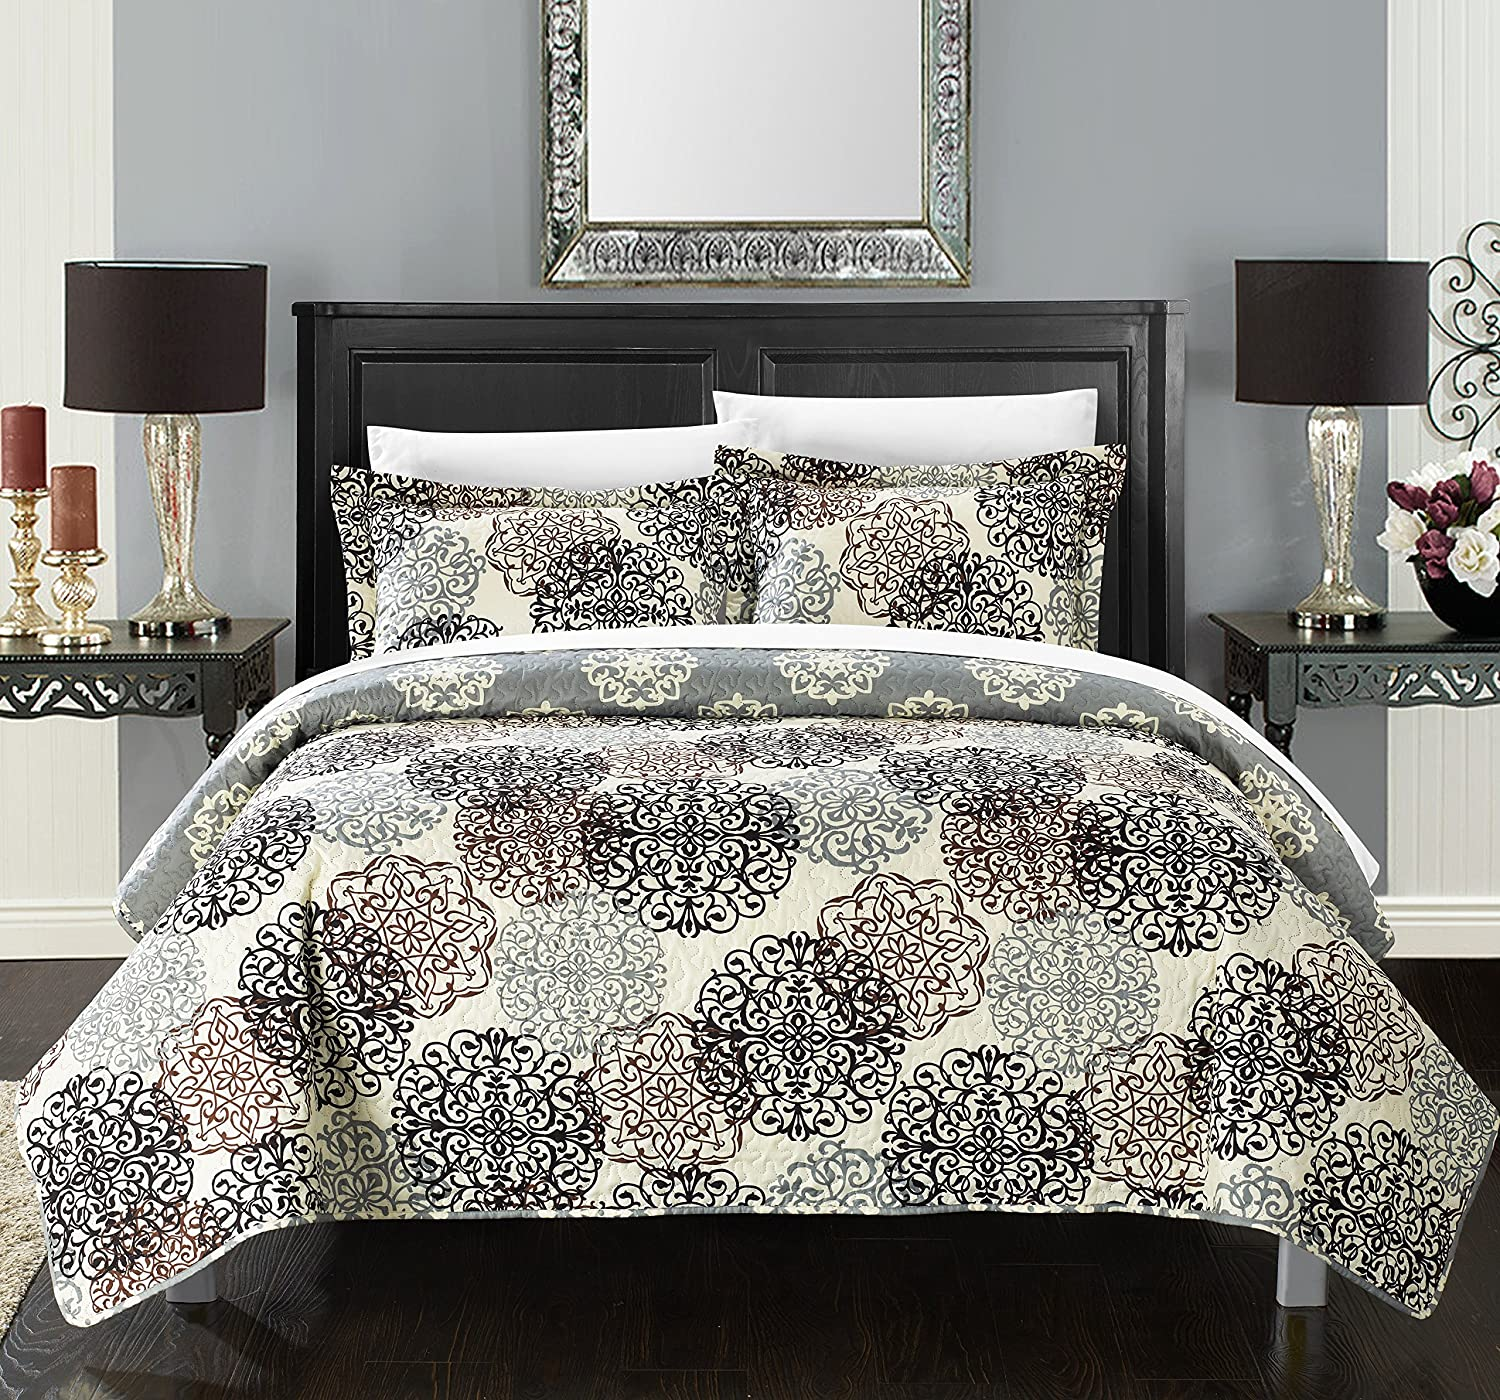 Chic Home 2 Piece Kelsie Boho Inspired Reversible Print Quilt Set, Twin, Beige QS2800-AN